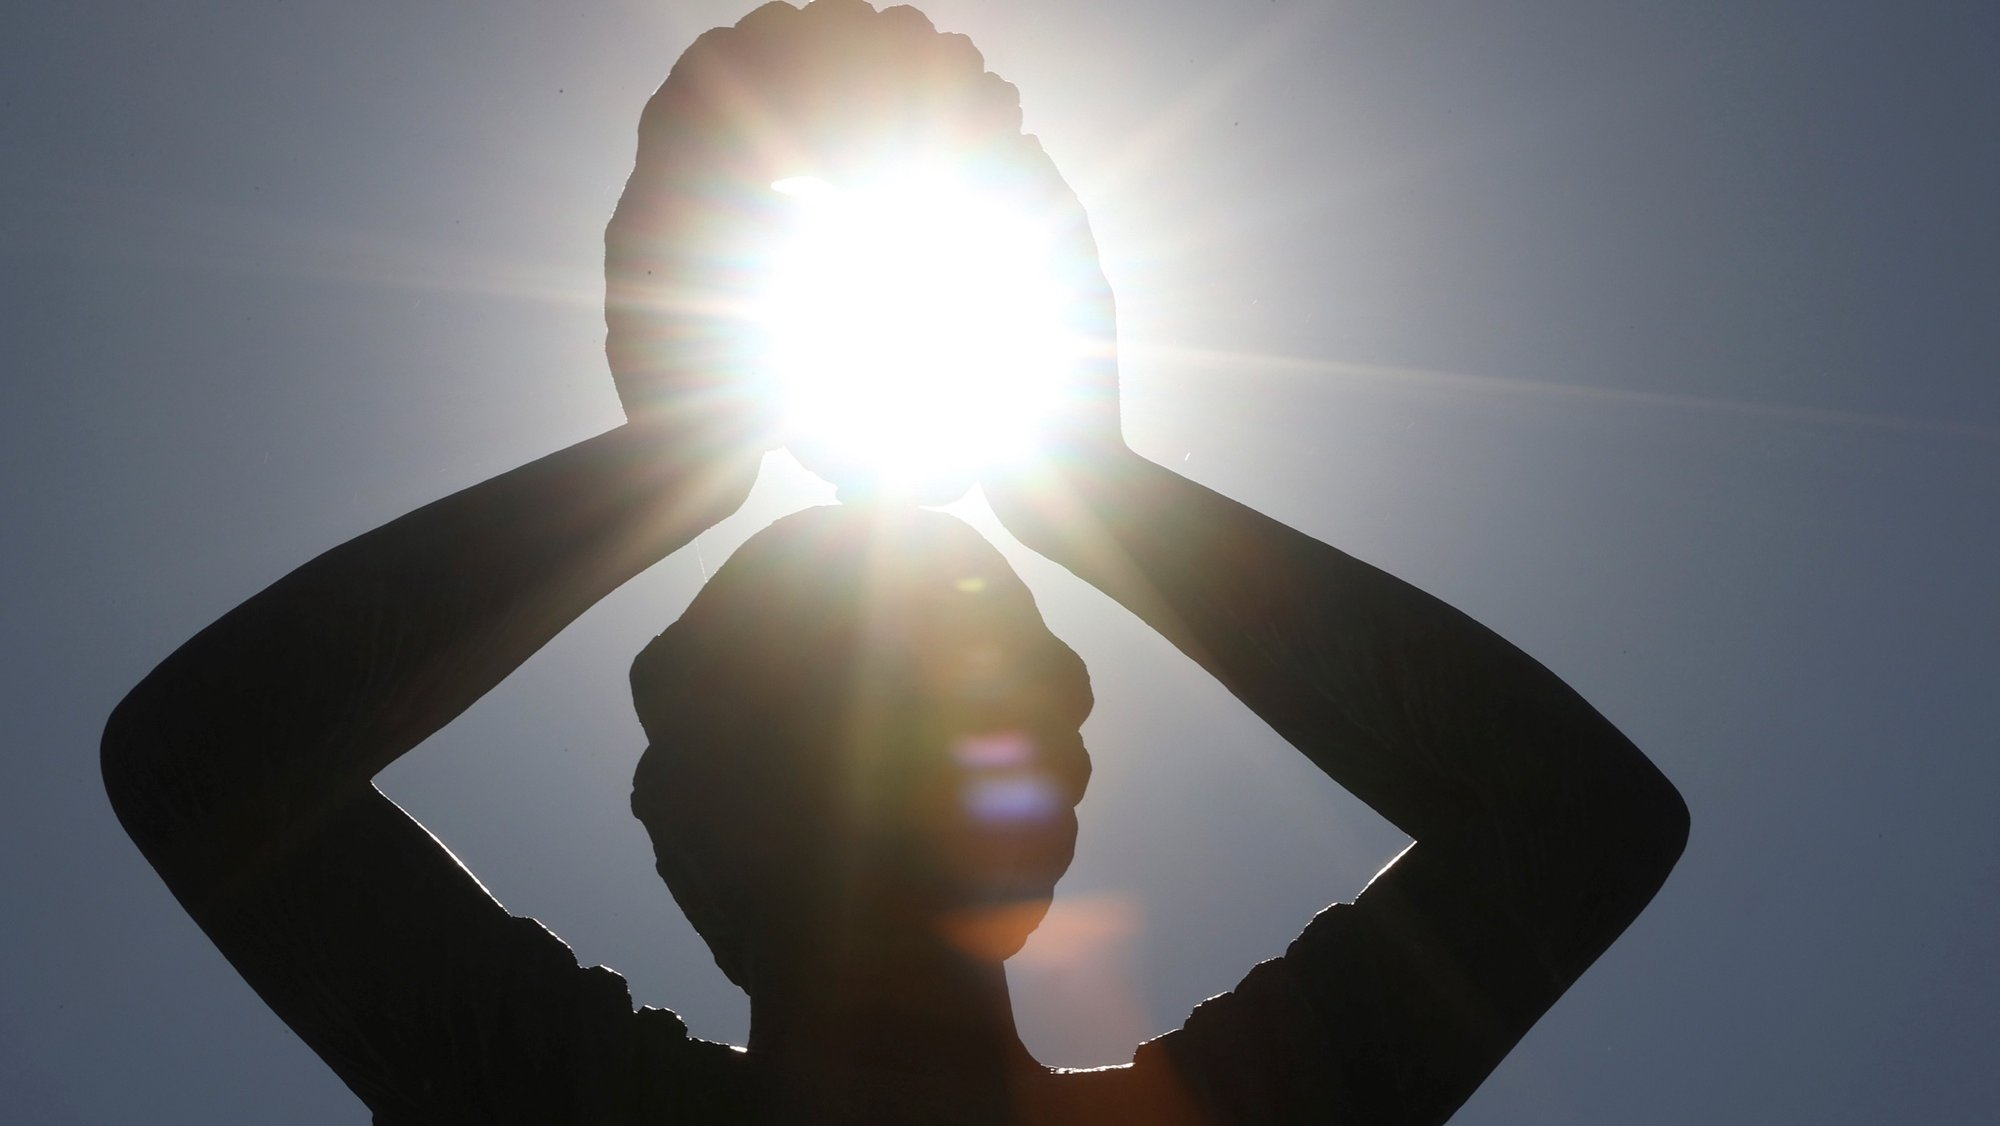 epa08578479 The sun is seen between the hands of a sculpture at Retiro Park in Madrid, Spain, 01 August 2020, during the heat wave that brought temperatures of over 40 degrees Celsius.  EPA/Mariscal